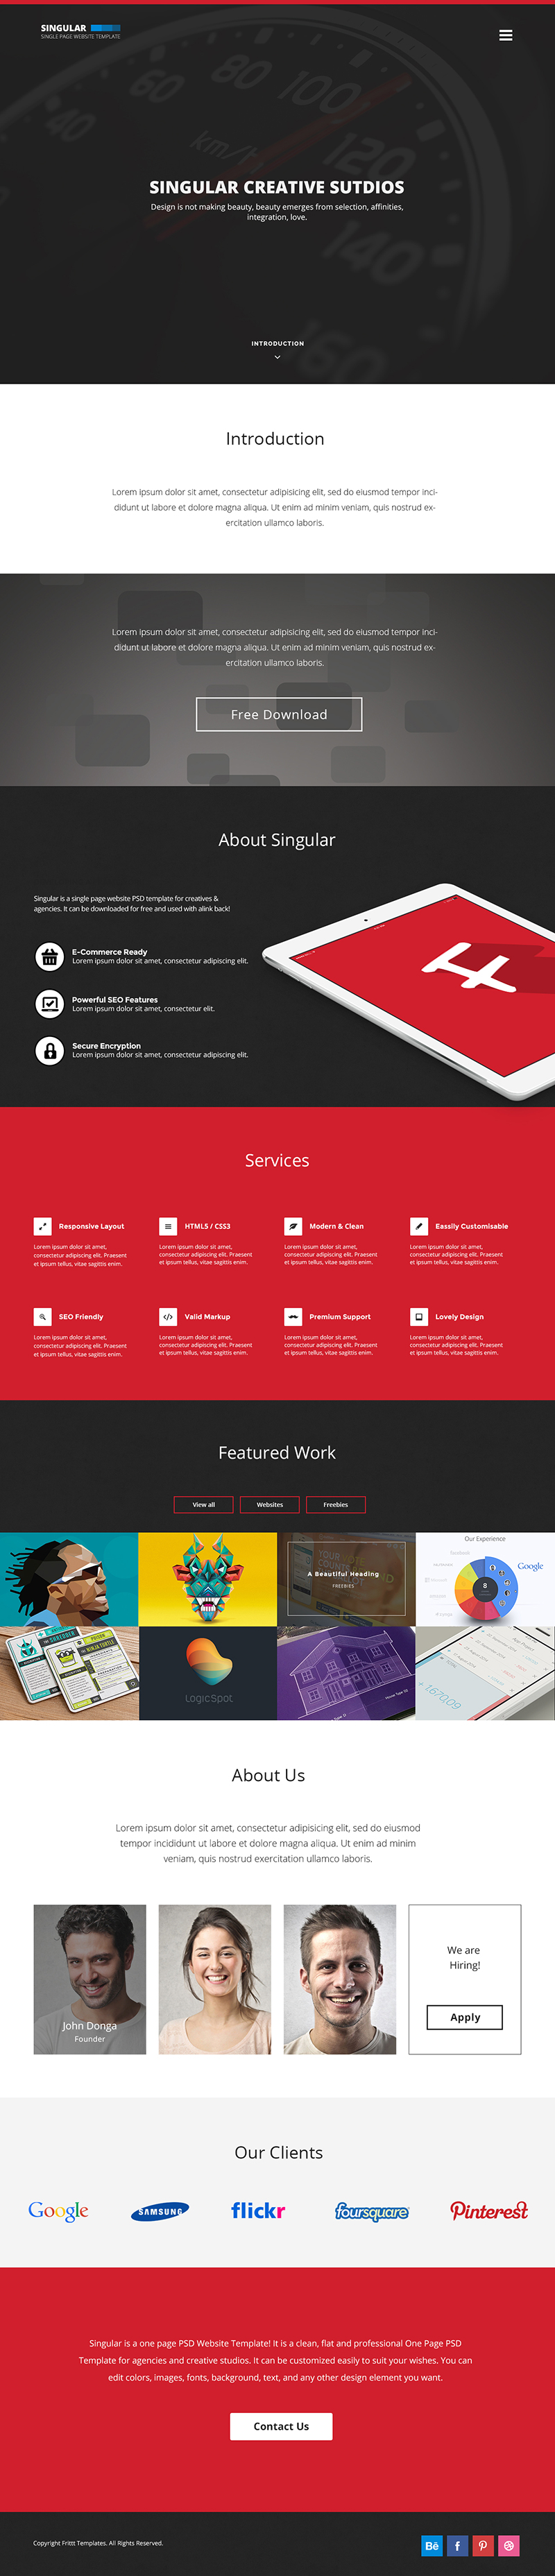 15 free psd website templates 2015 free psd templates this one page website template could be used for different kinds of sites such as agency portfolio landing page small business and freelancer sites fbccfo